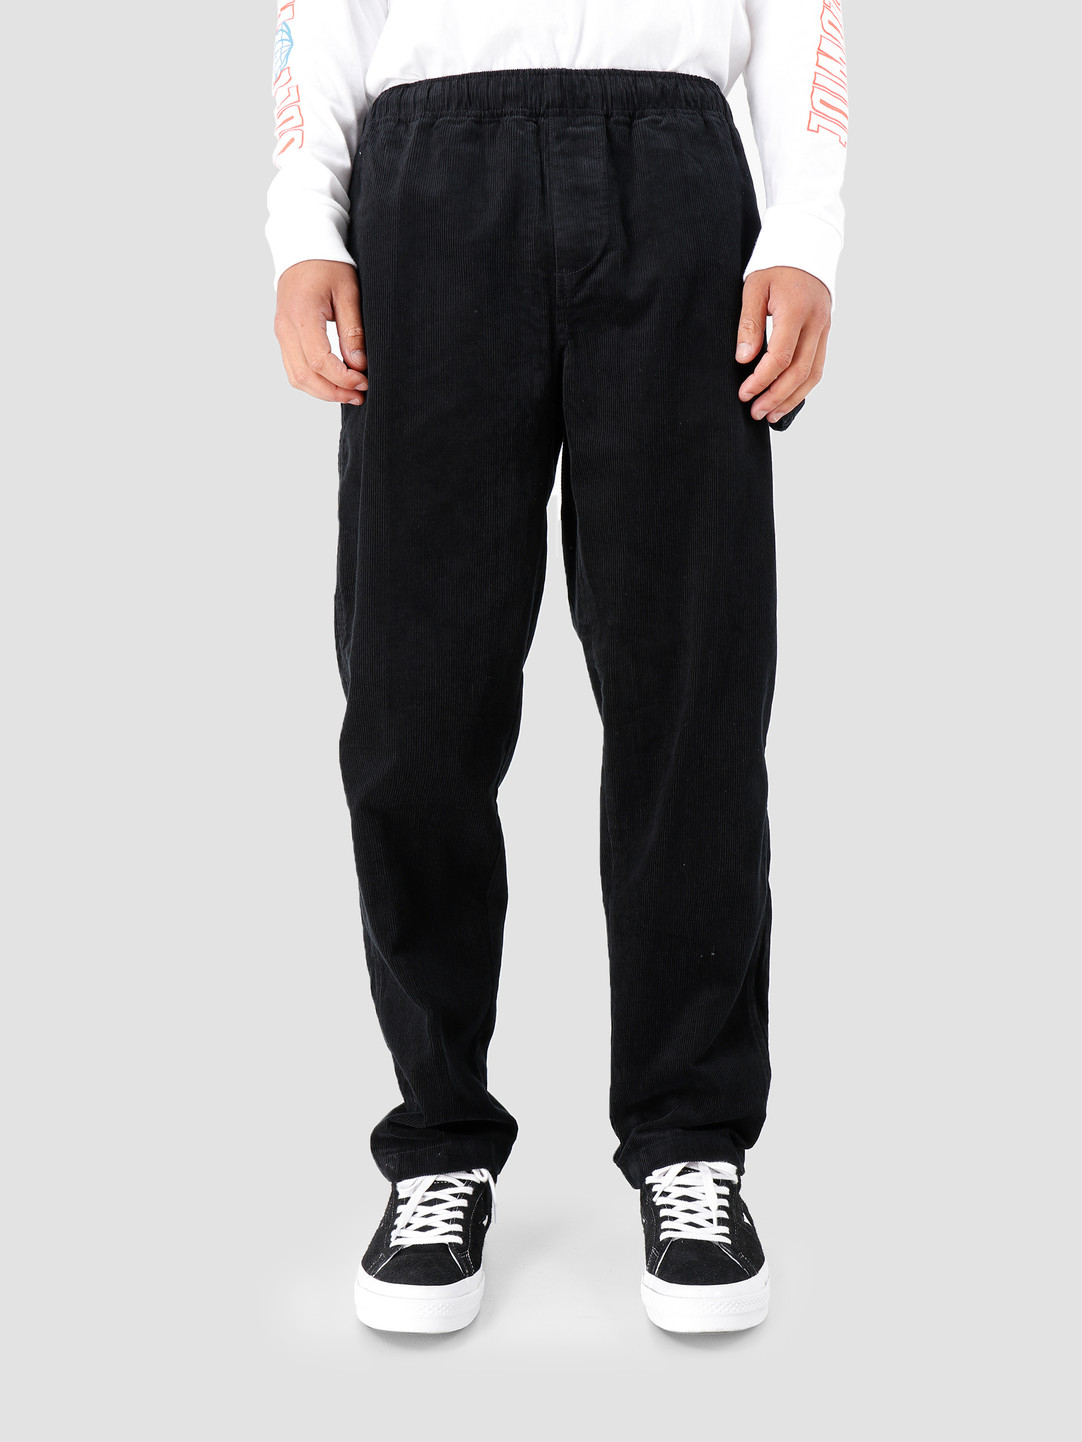 Obey Obey Easy Cord Carpenter Pant Black 142020139-BLK